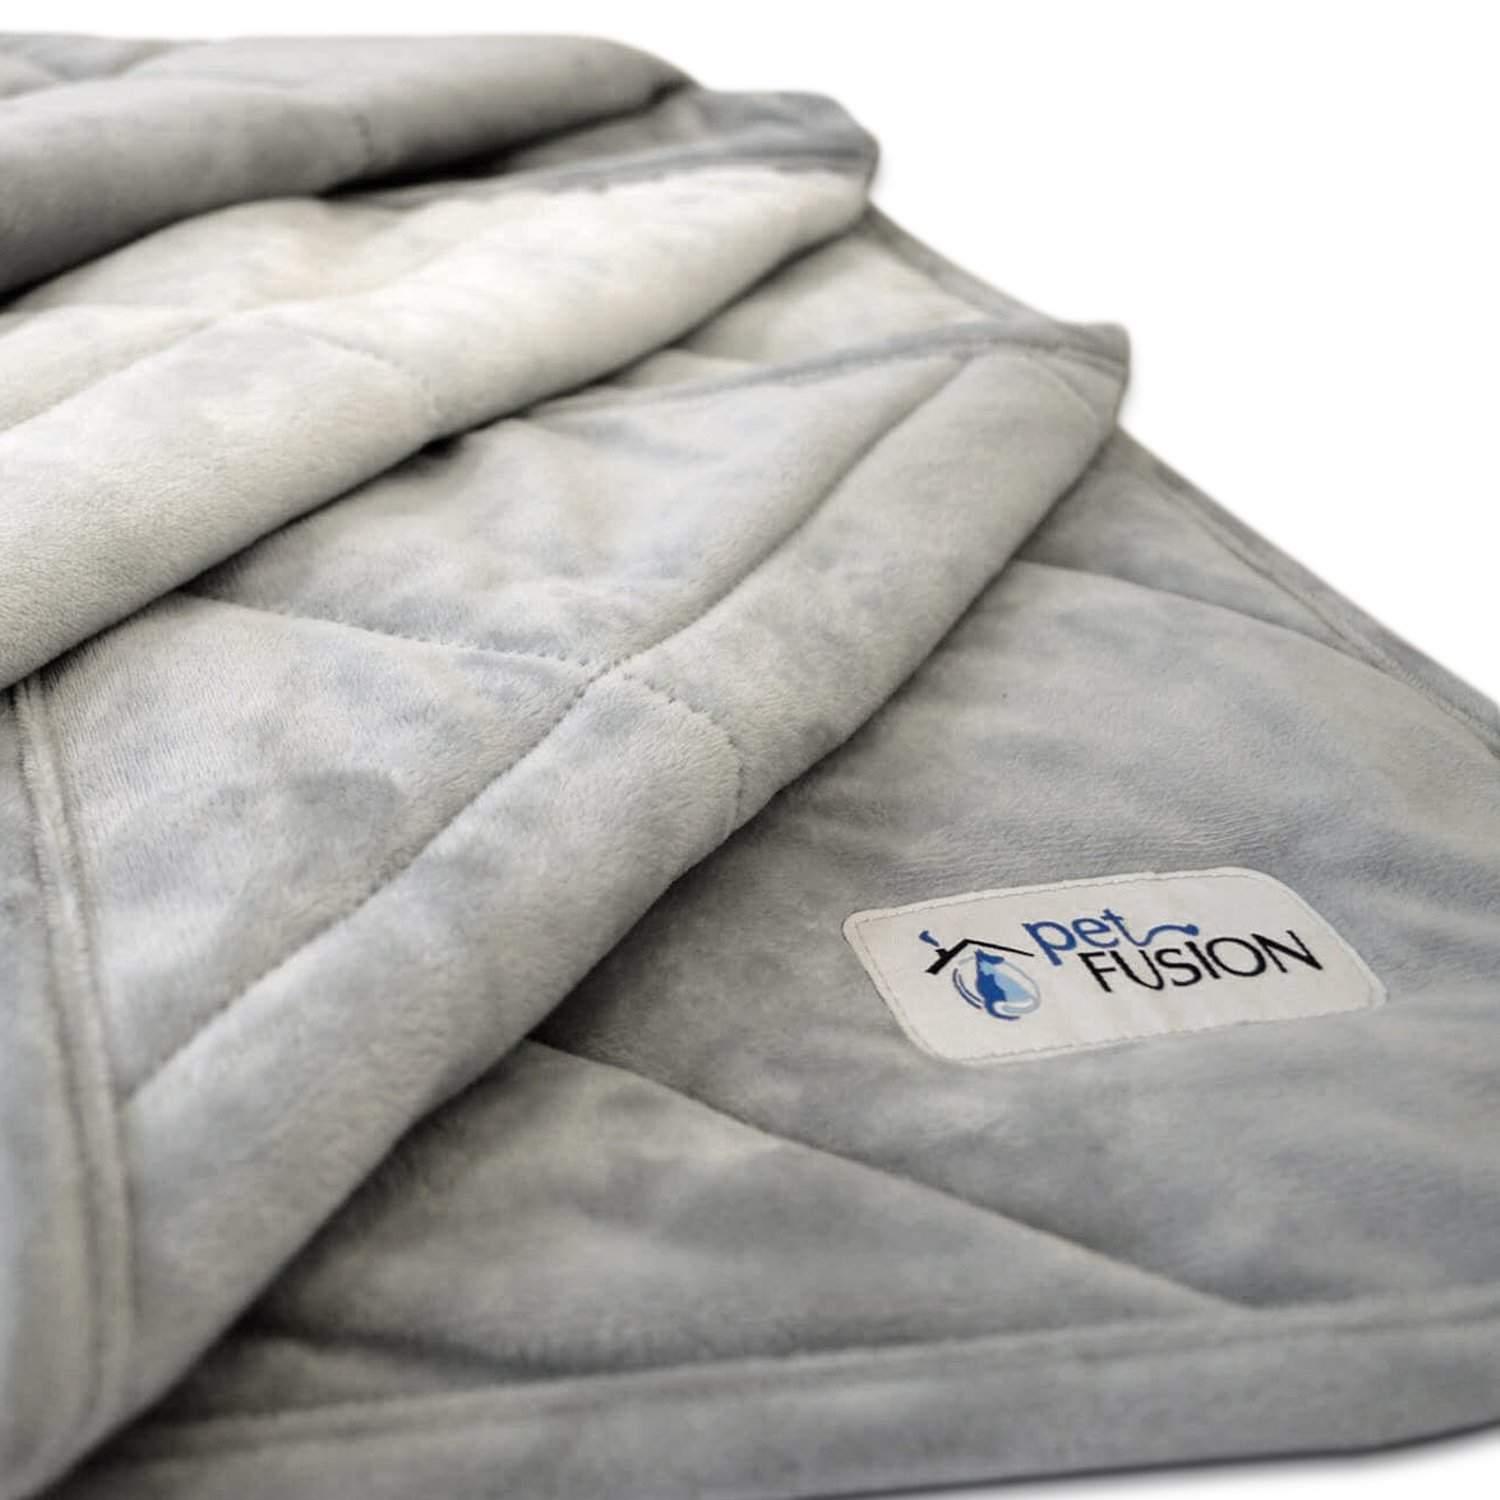 PetFusion Premium Plus Quilted Medium Dog Blanket (42x34''). Light Inner Fill 70GSM, Reversible Gray Micro Plush. [100% soft polyester]